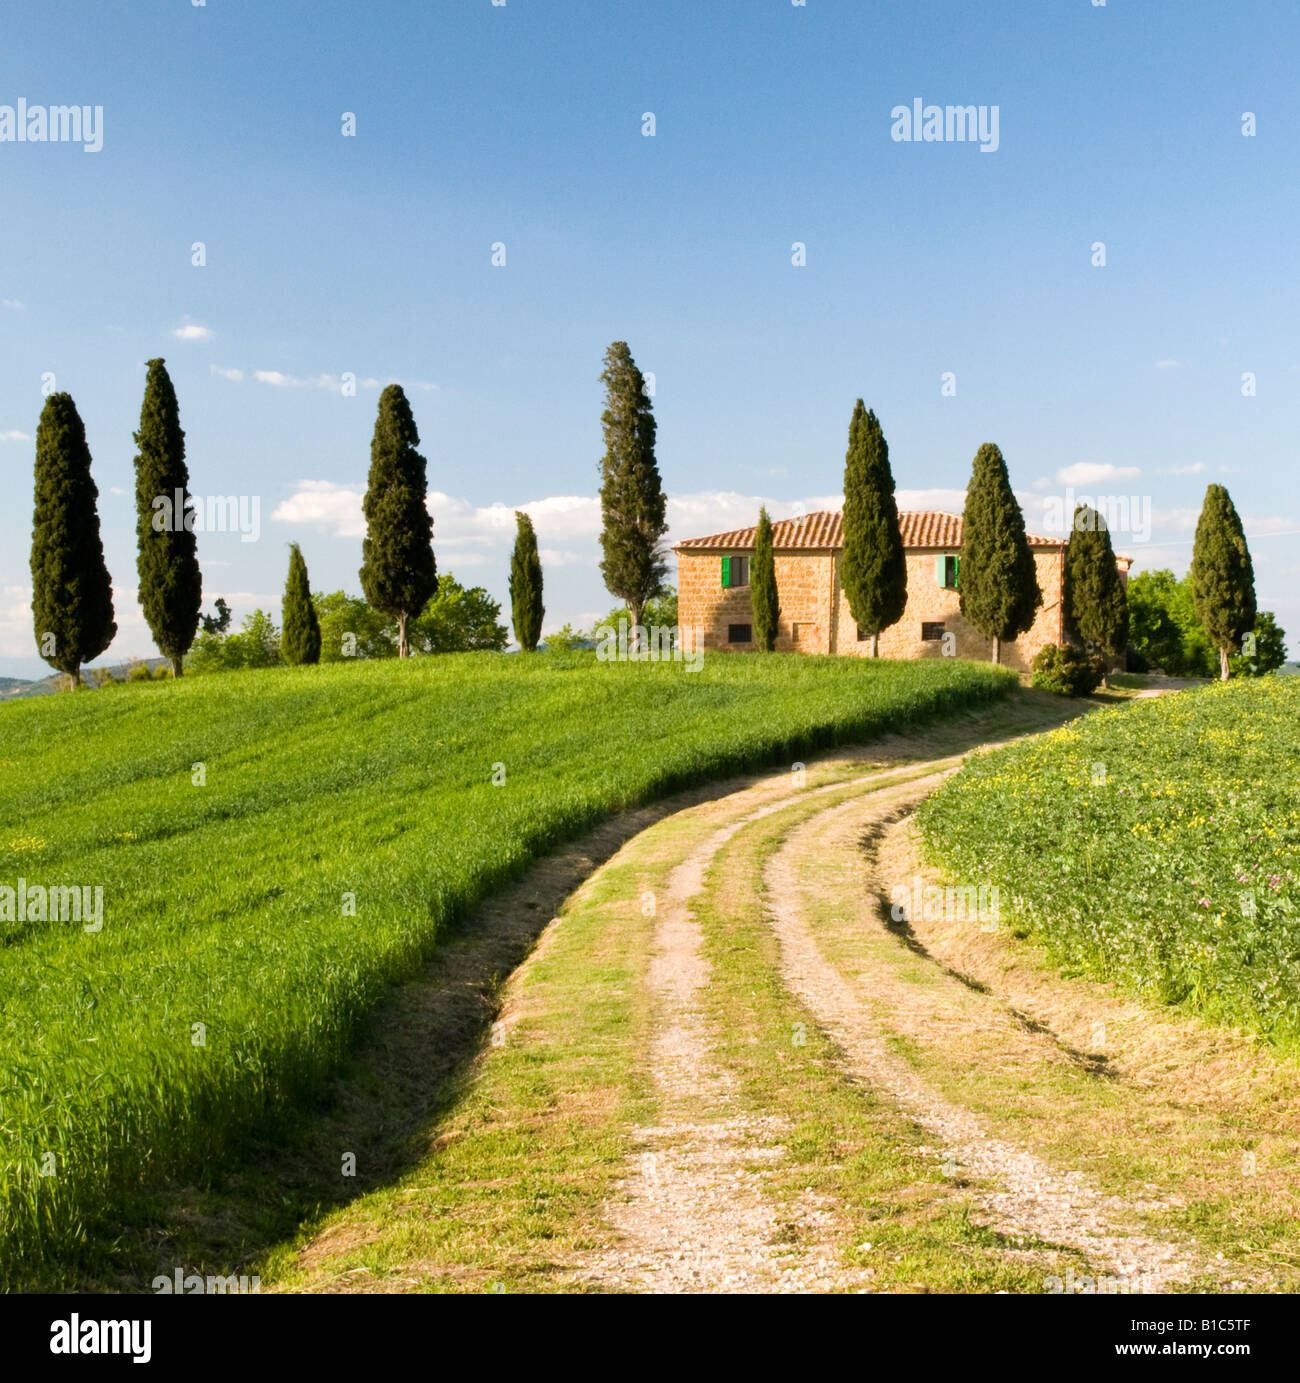 Farmhouse and Cypress trees, Valle de Orcia, Tuscany, Italy - Stock Image